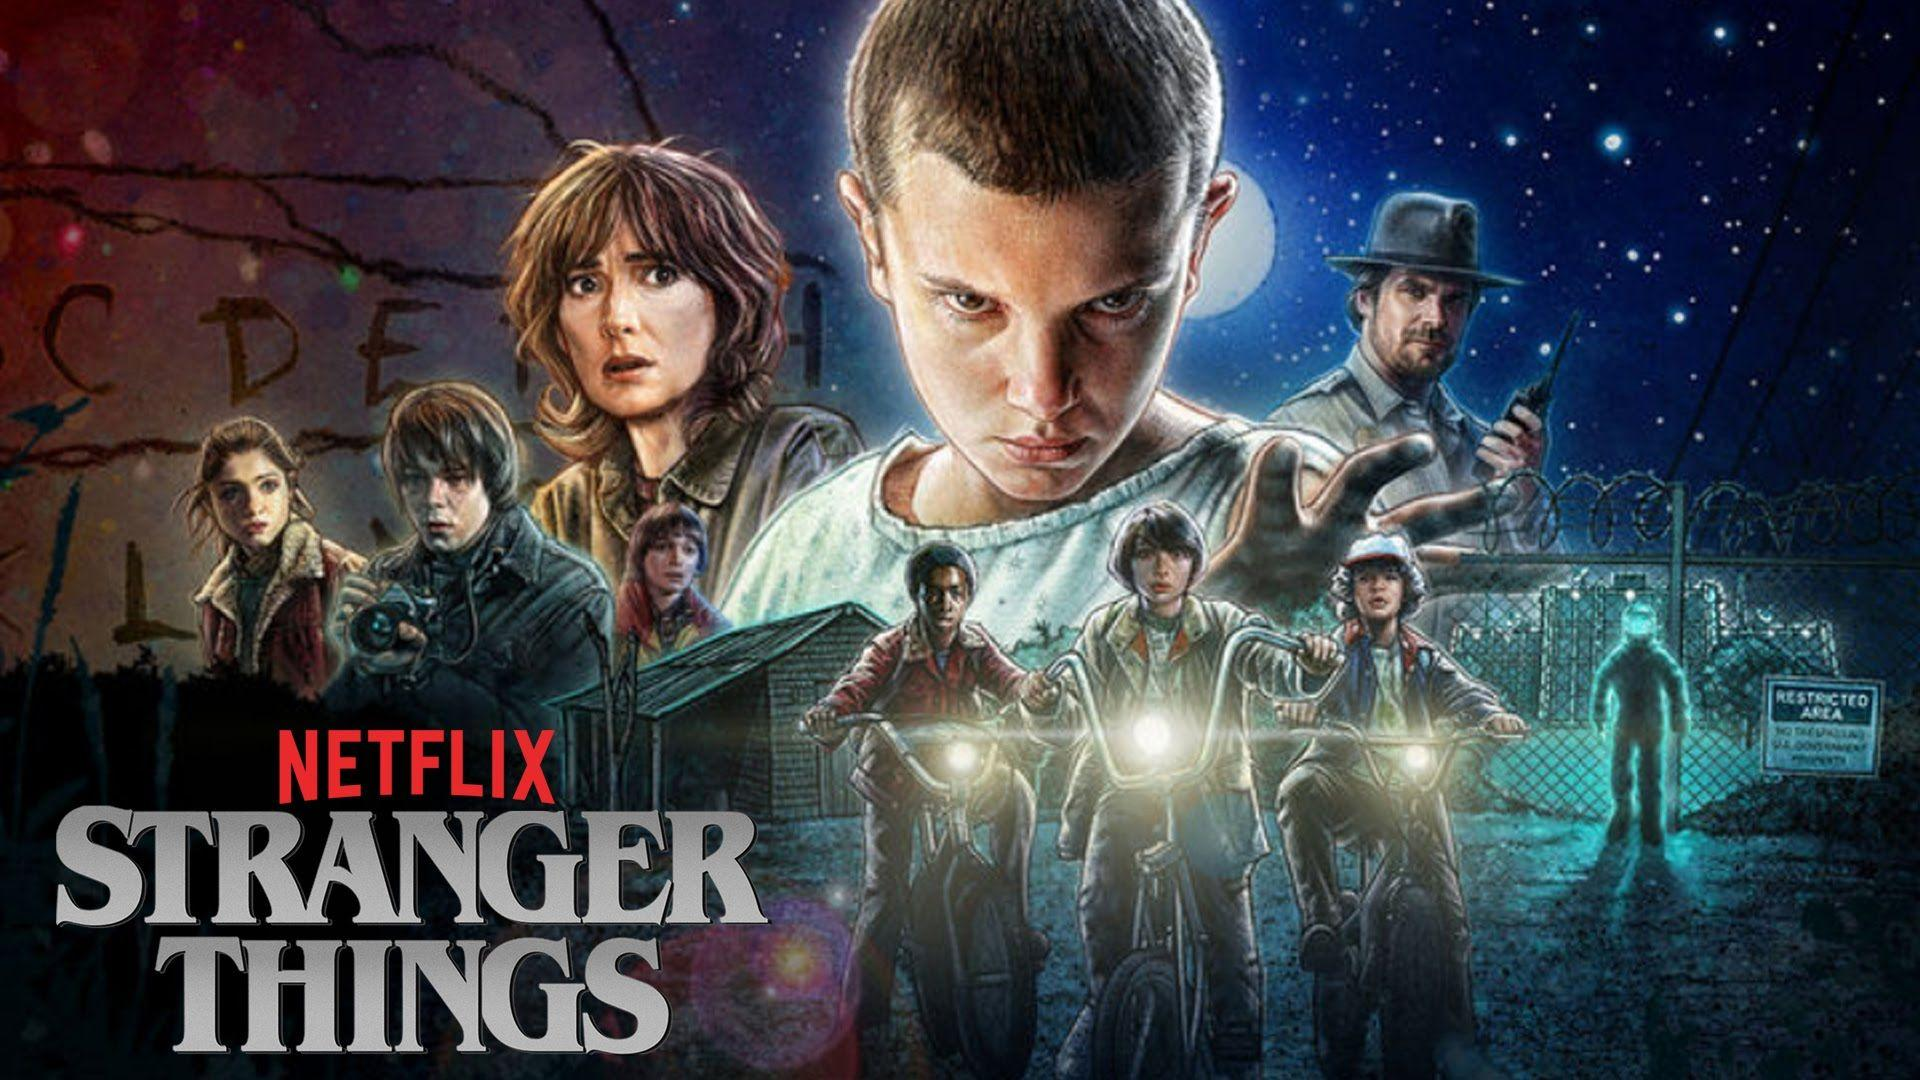 Netflix Stranger Things Desktop Wallpapers Top Free